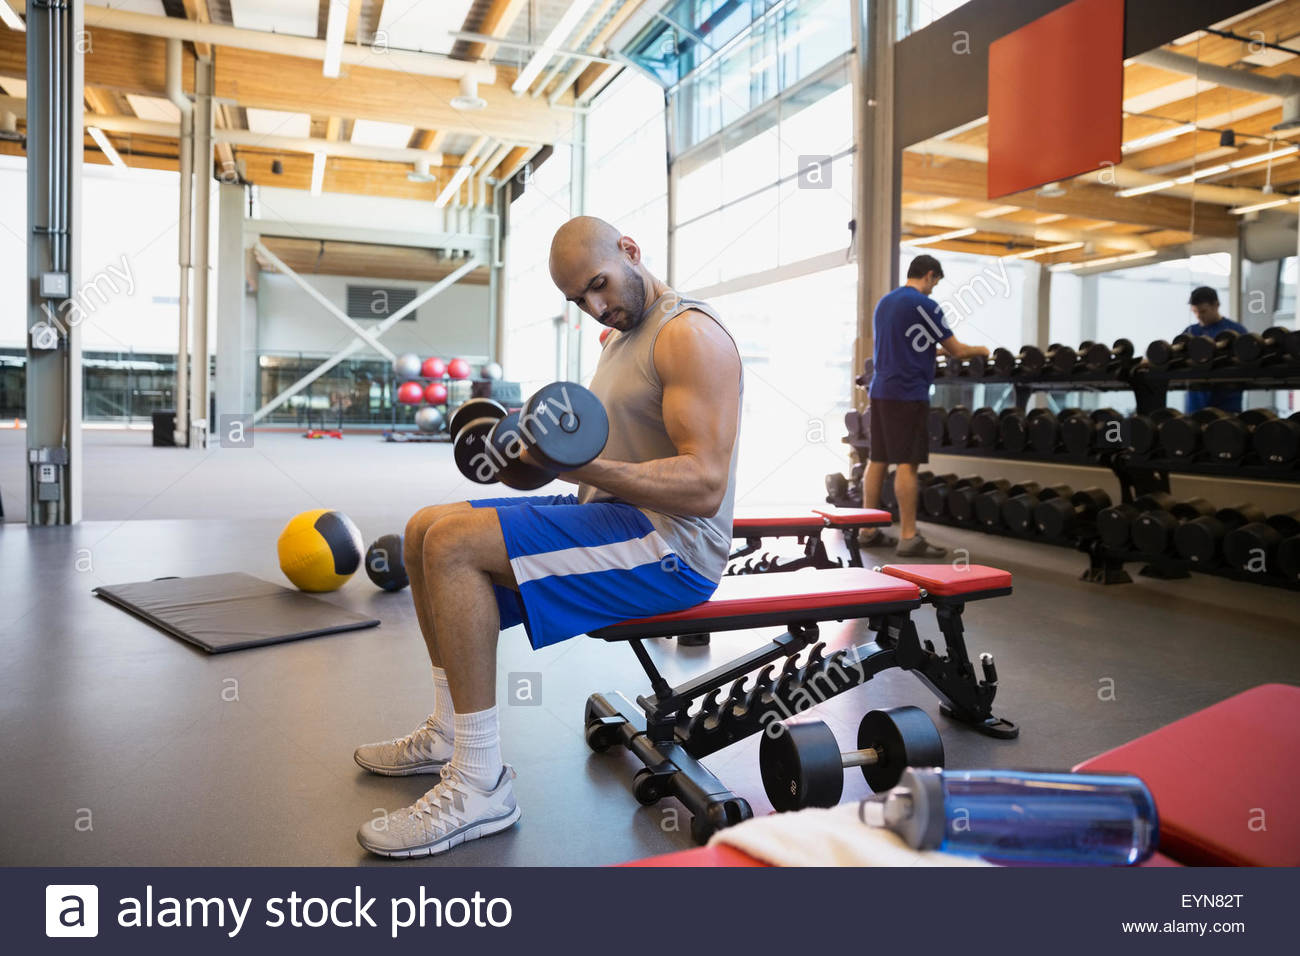 Man doing dumbbell biceps curls bench at gym - Stock Image